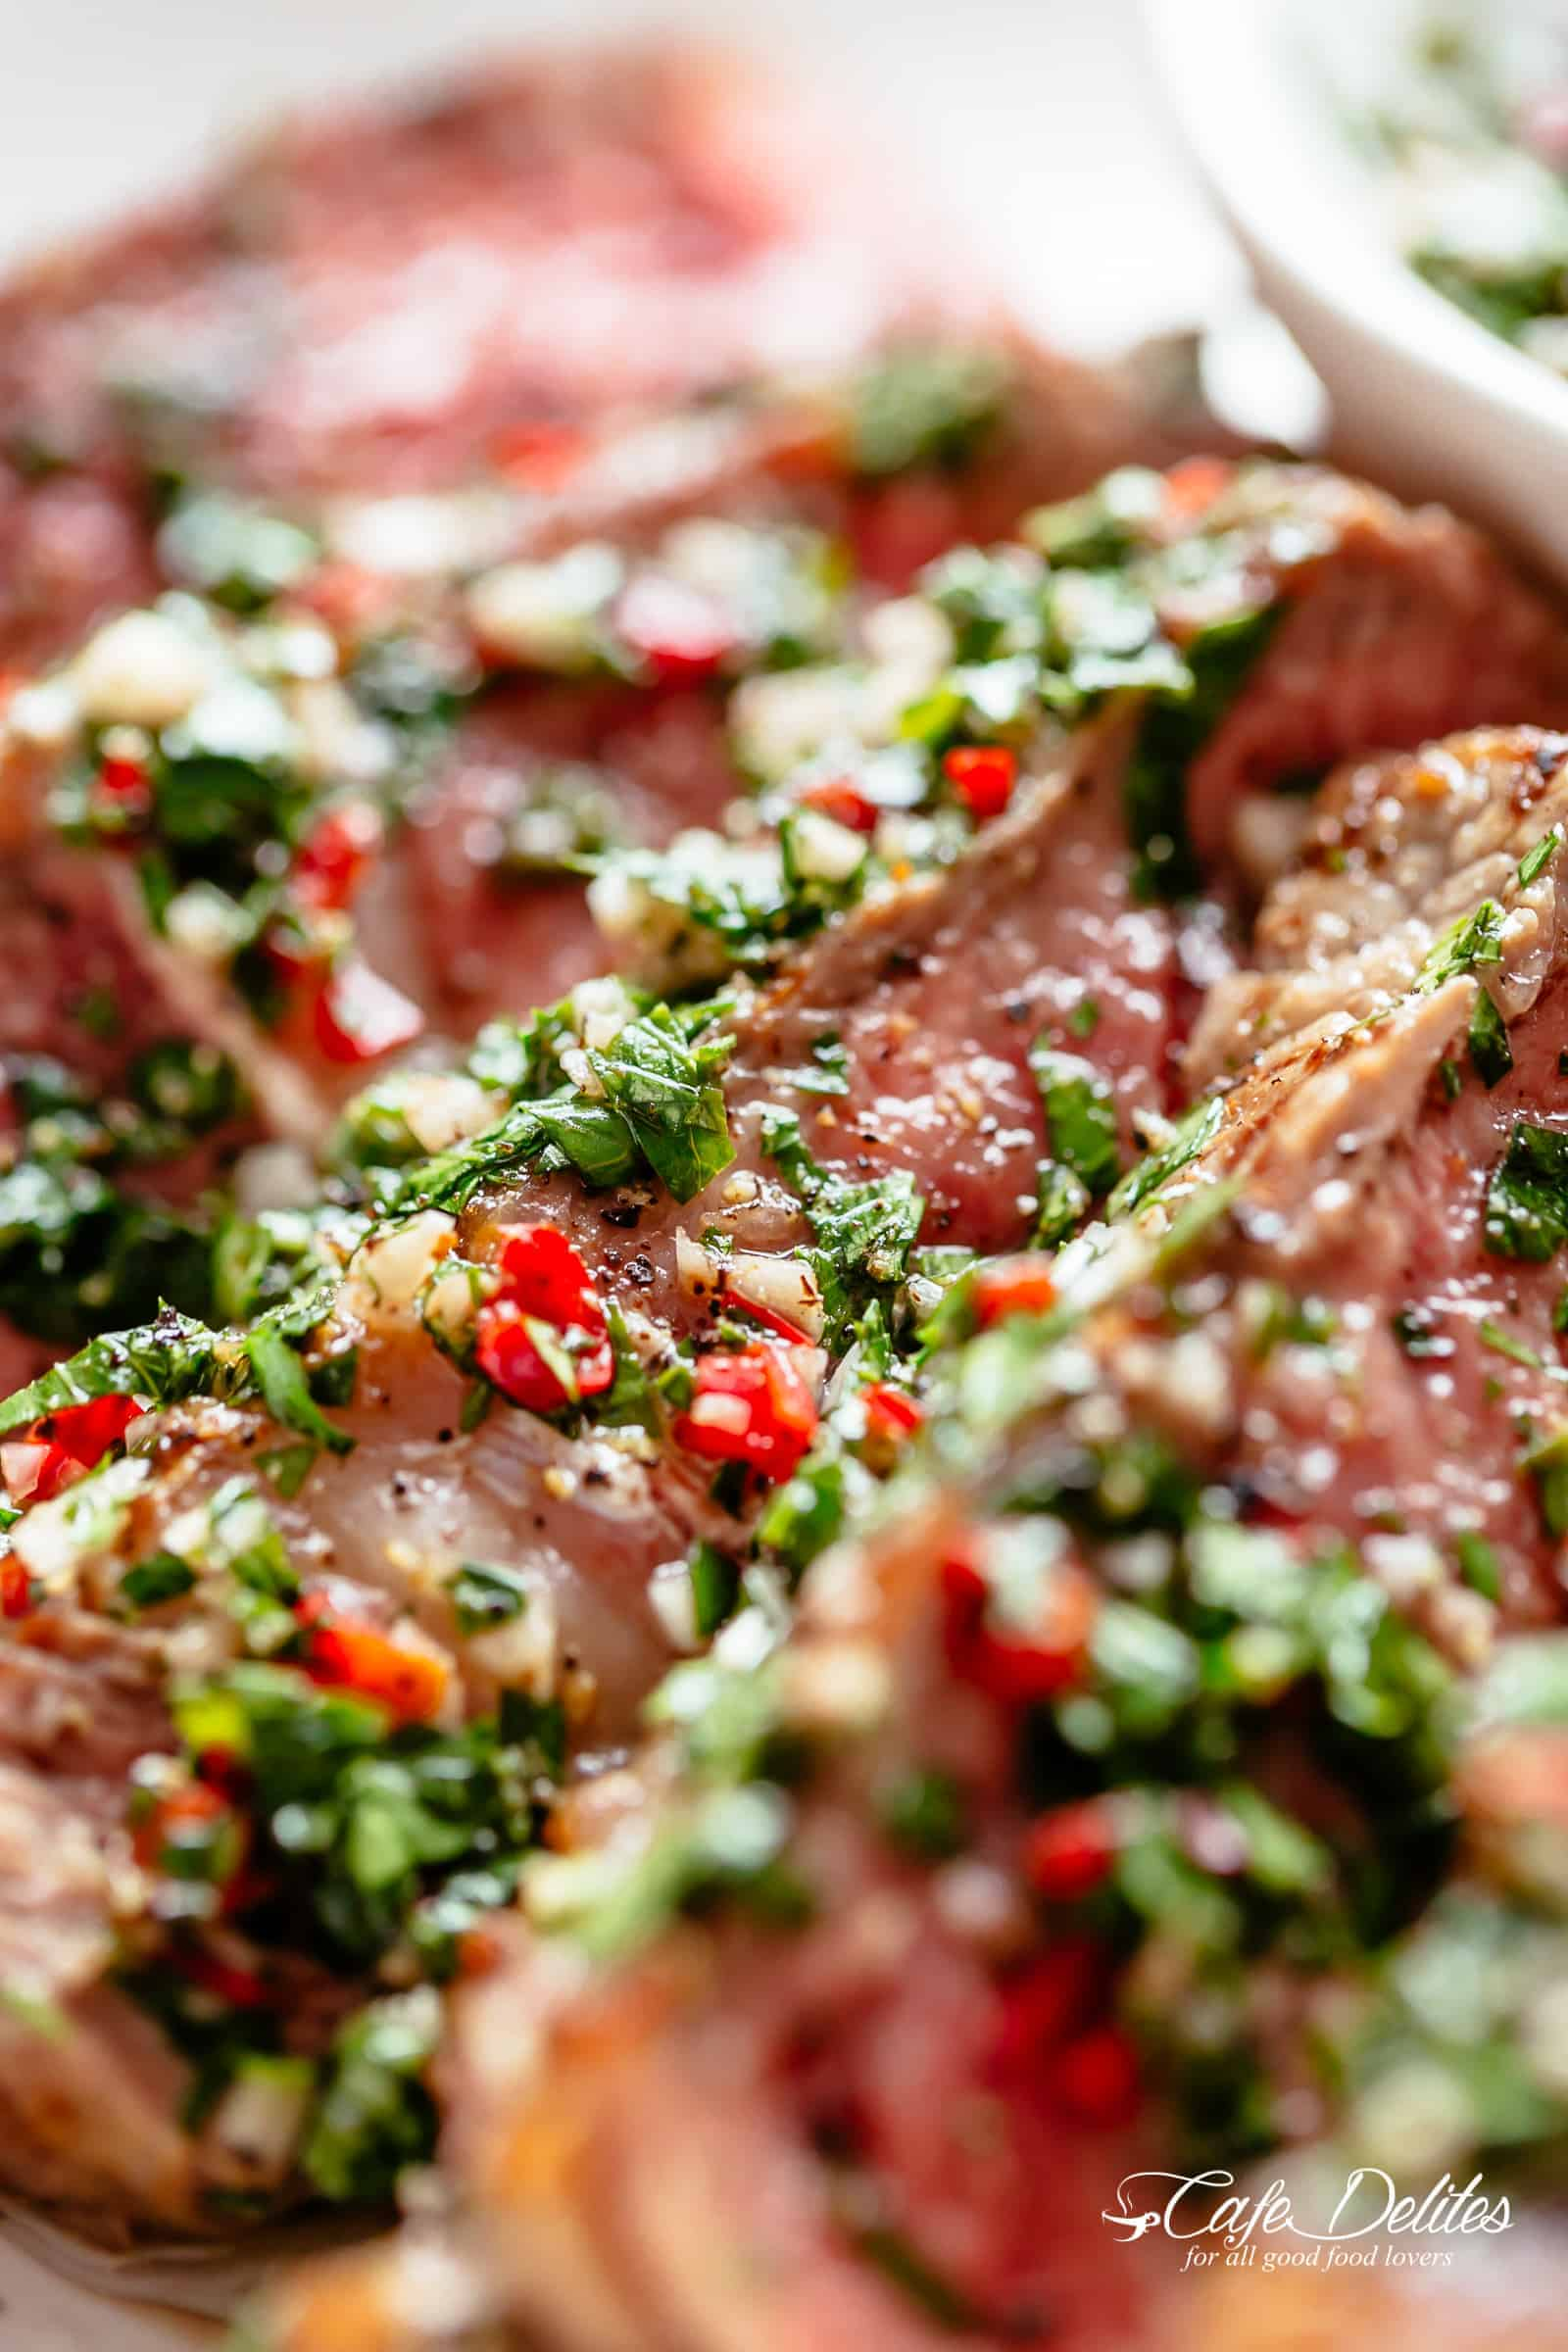 Chimichurri is the most delicious silky condiment that drips over your steak, chicken or fish. Super easy to make and tastes incredible! | cafedelites.com